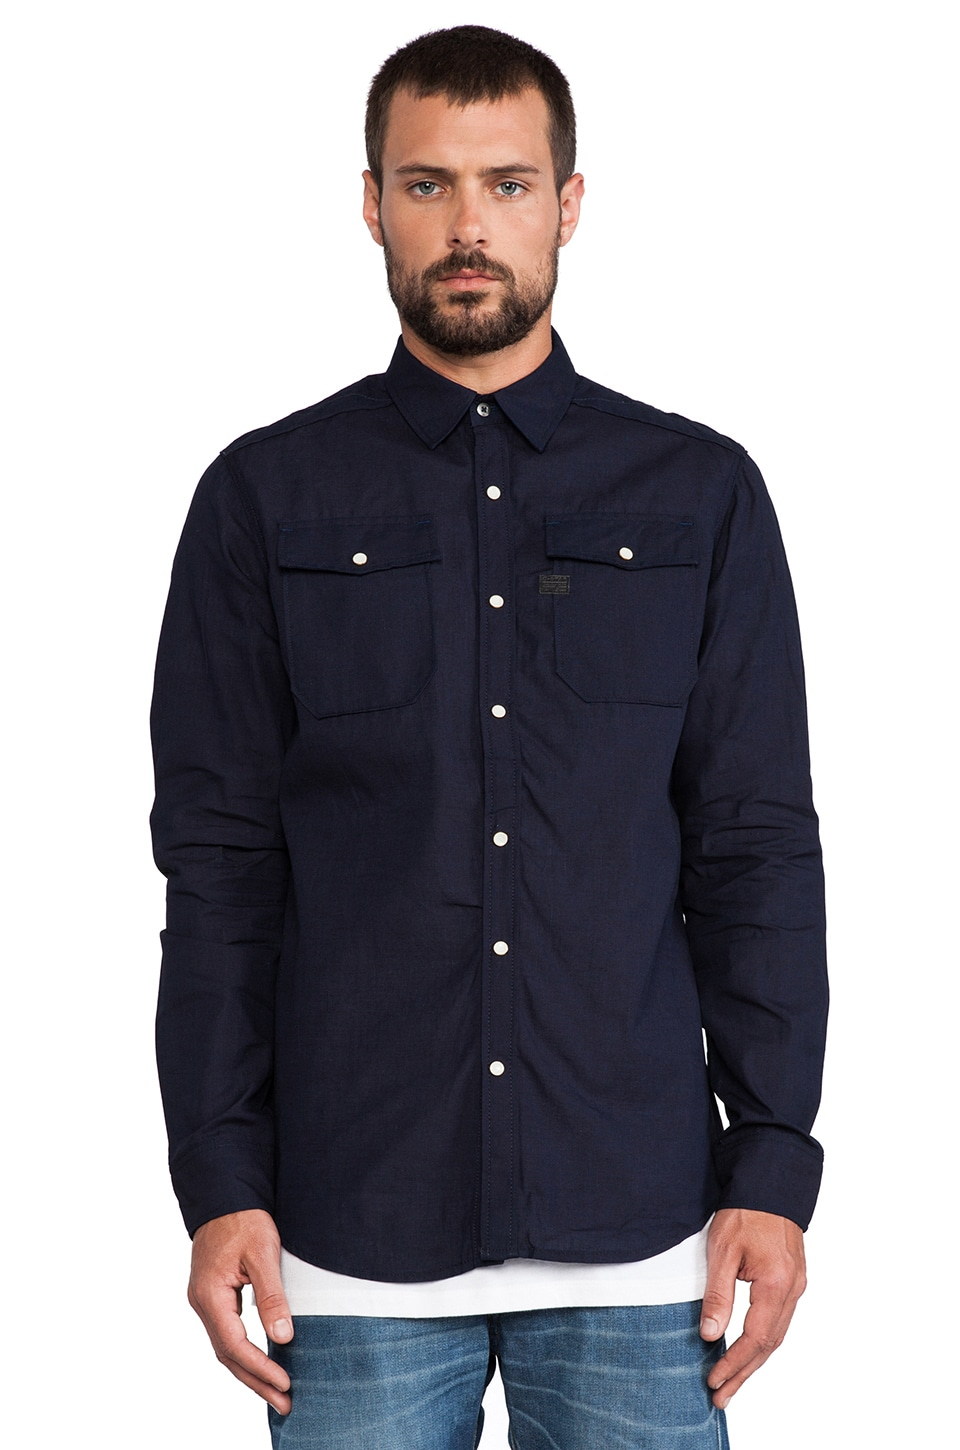 G-Star Landoh Chambray Shirt in Raw